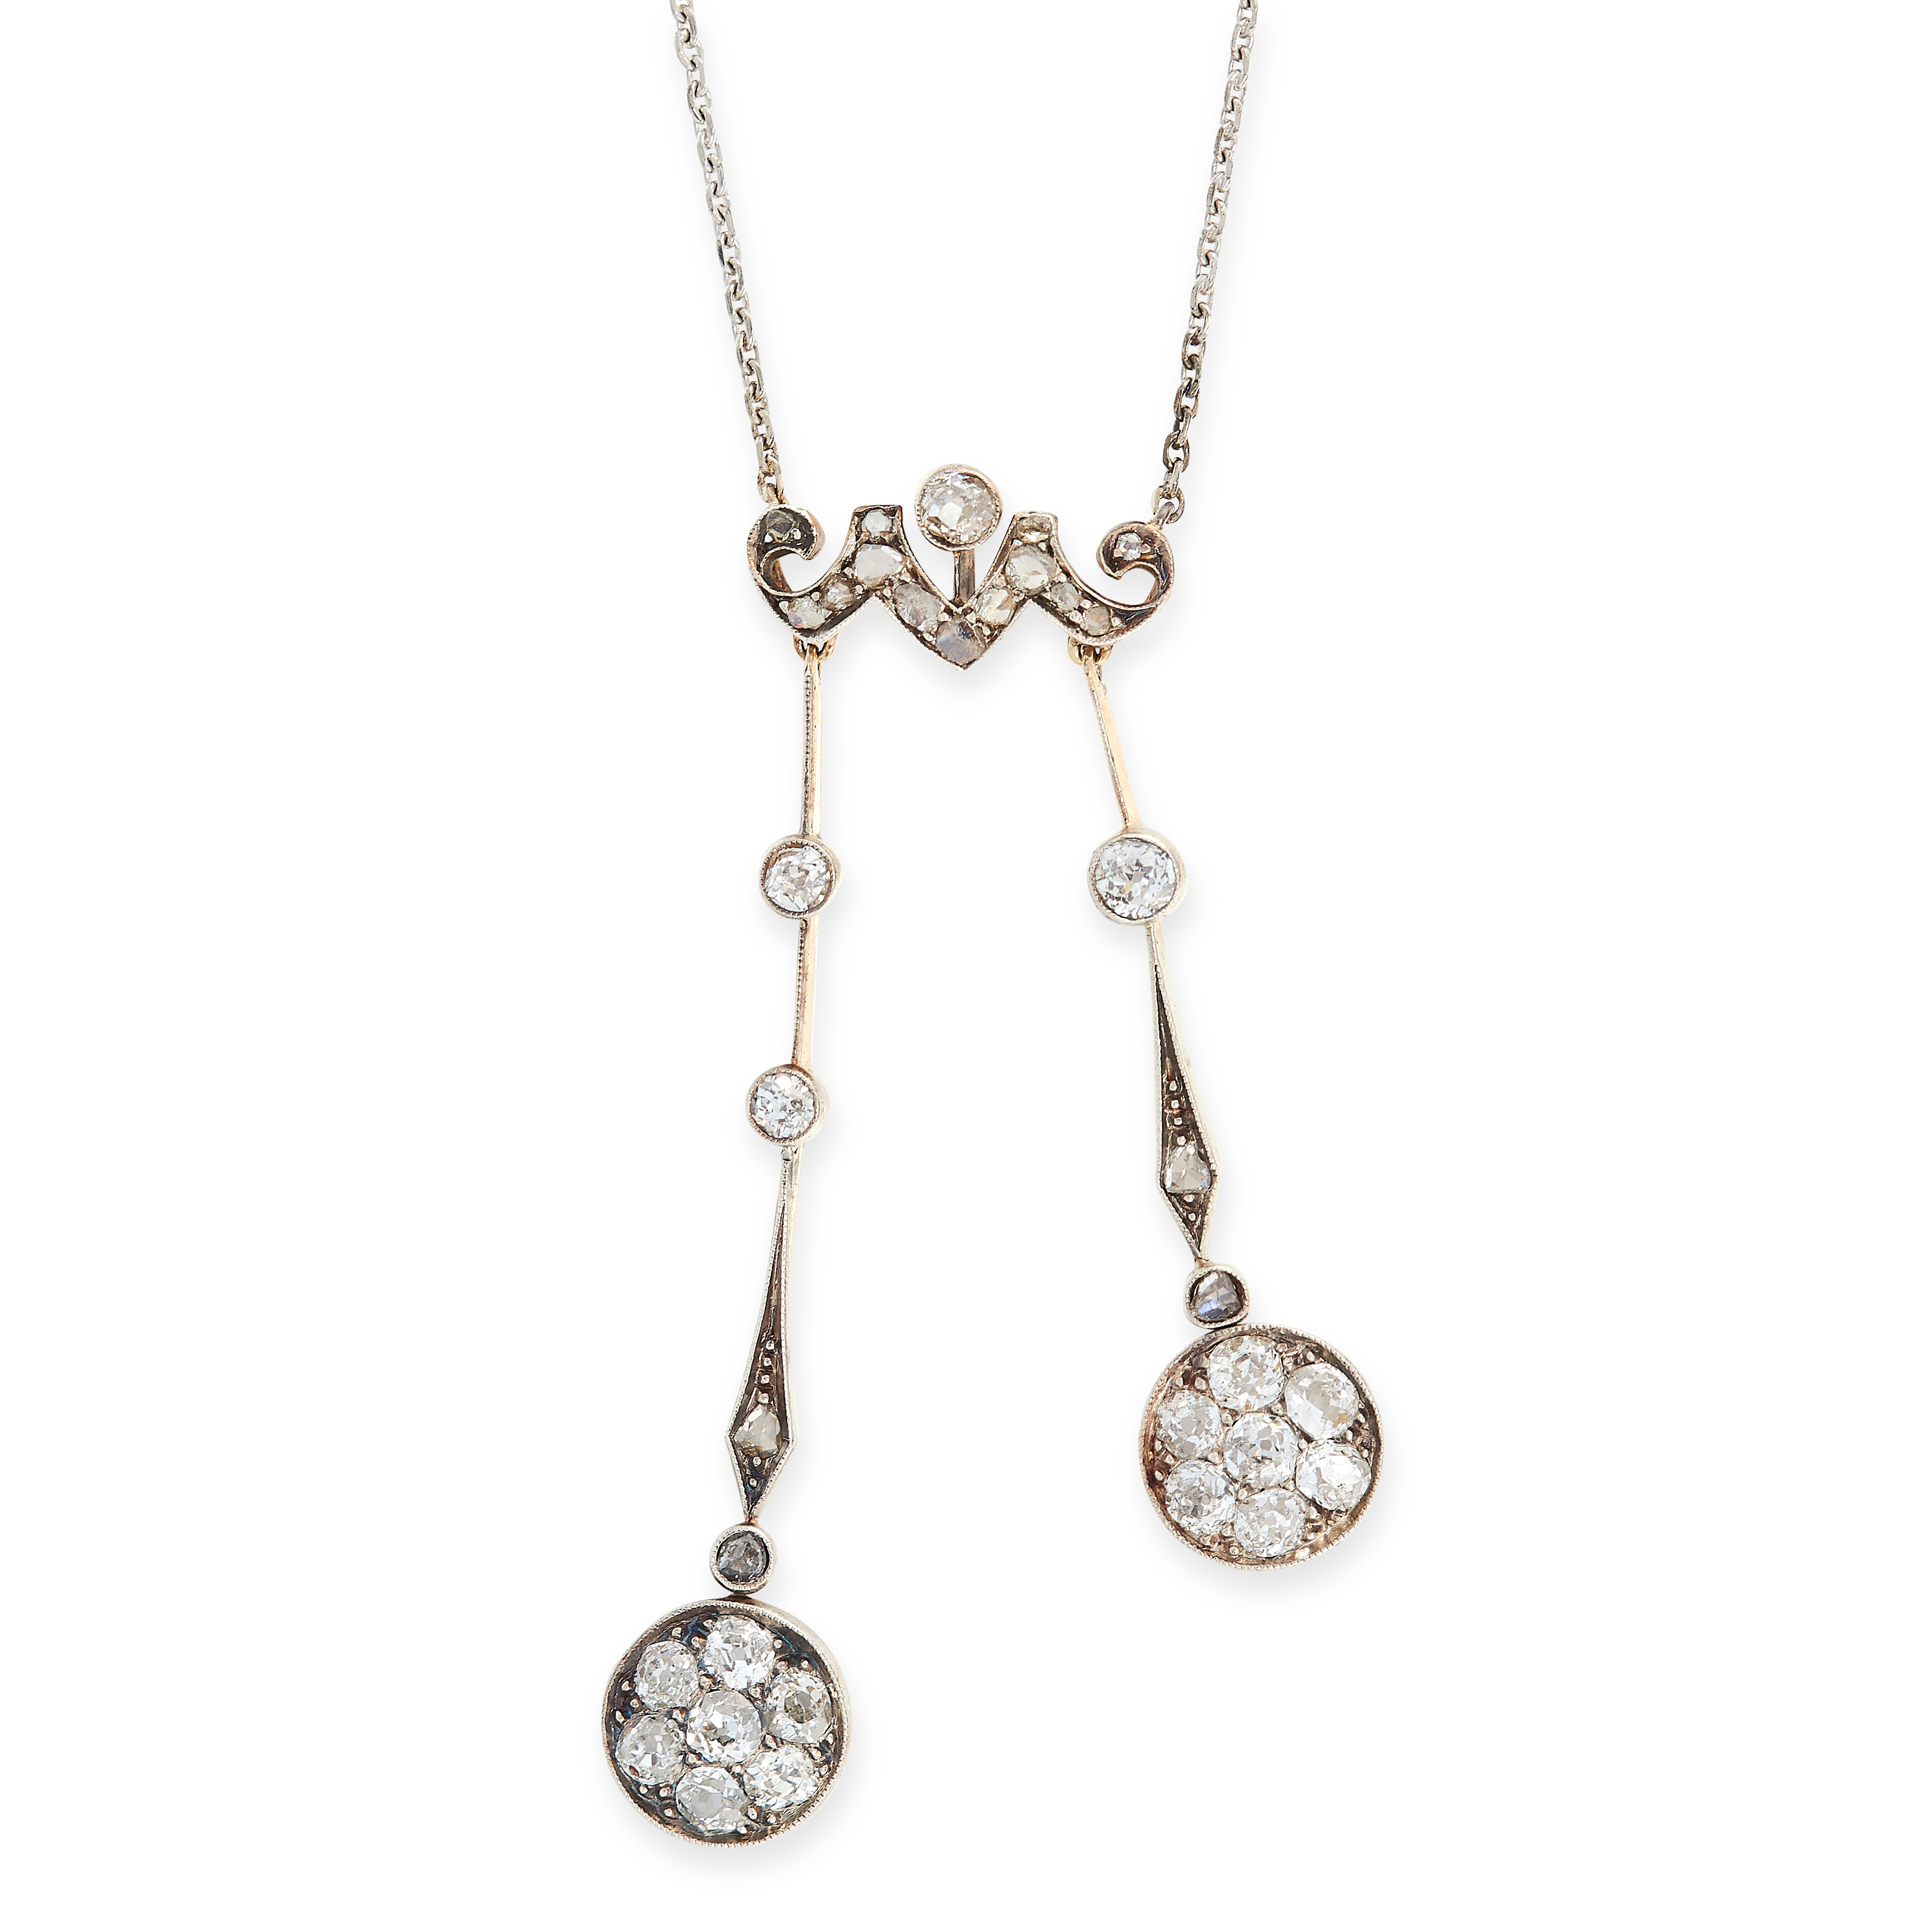 ANTIQUE DIAMOND NEGLIGEE PENDANT NECKLACE, CIRCA 1900 comprising of two drops set with old and